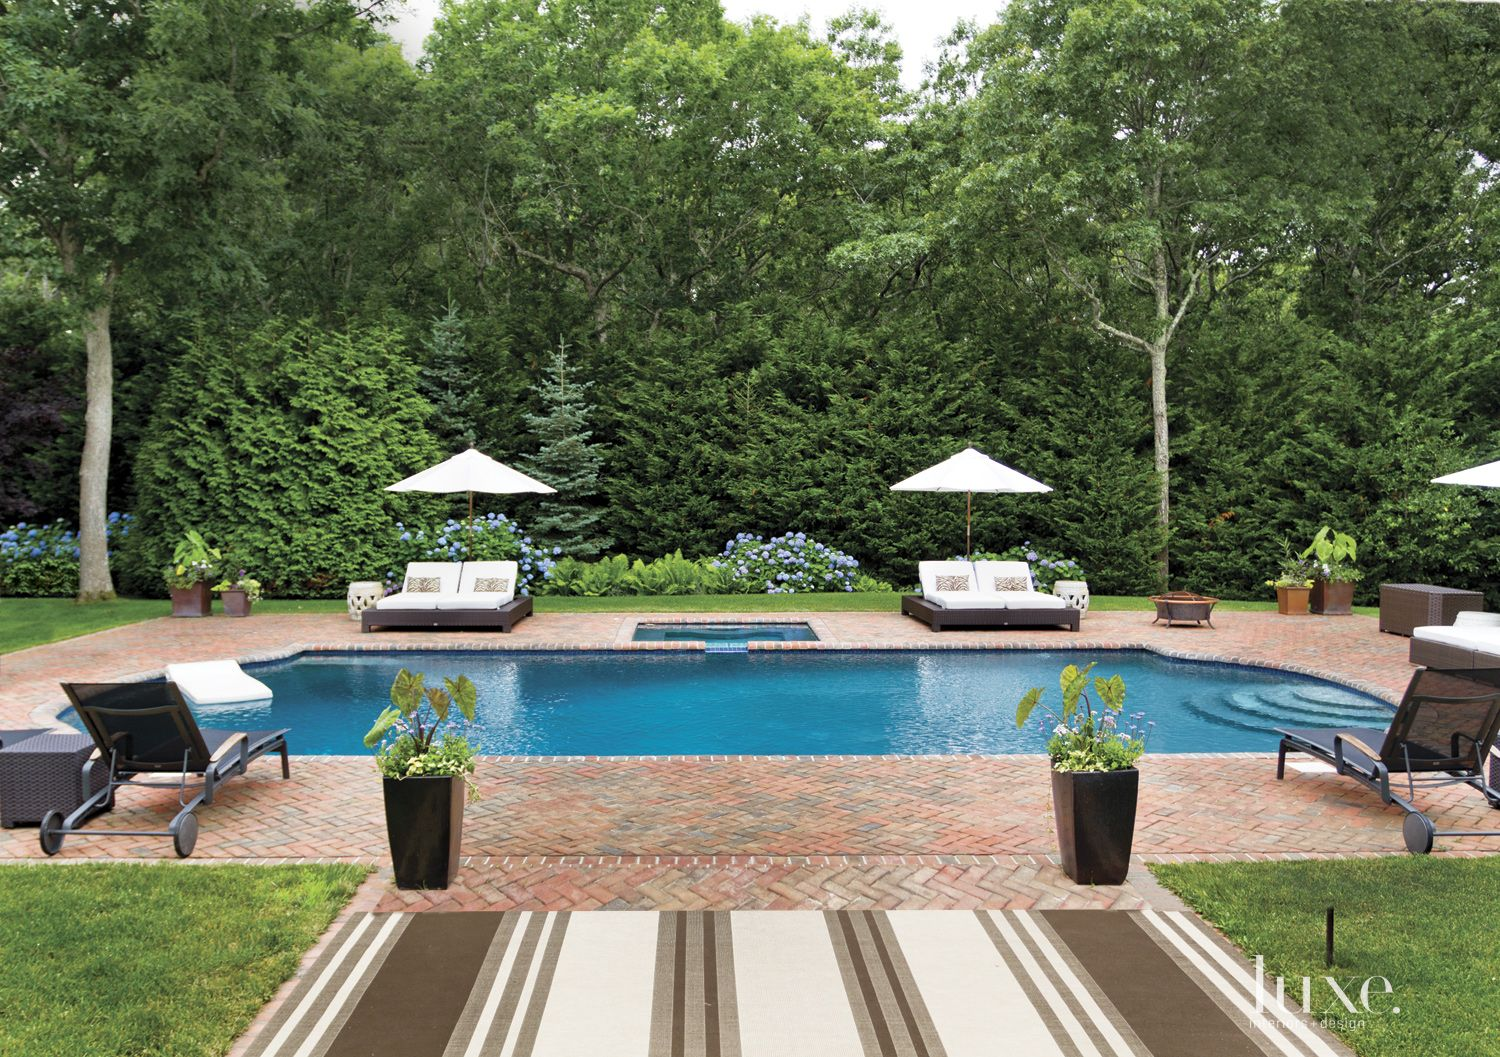 Contemporary Neutral Poolside with Brick Surround